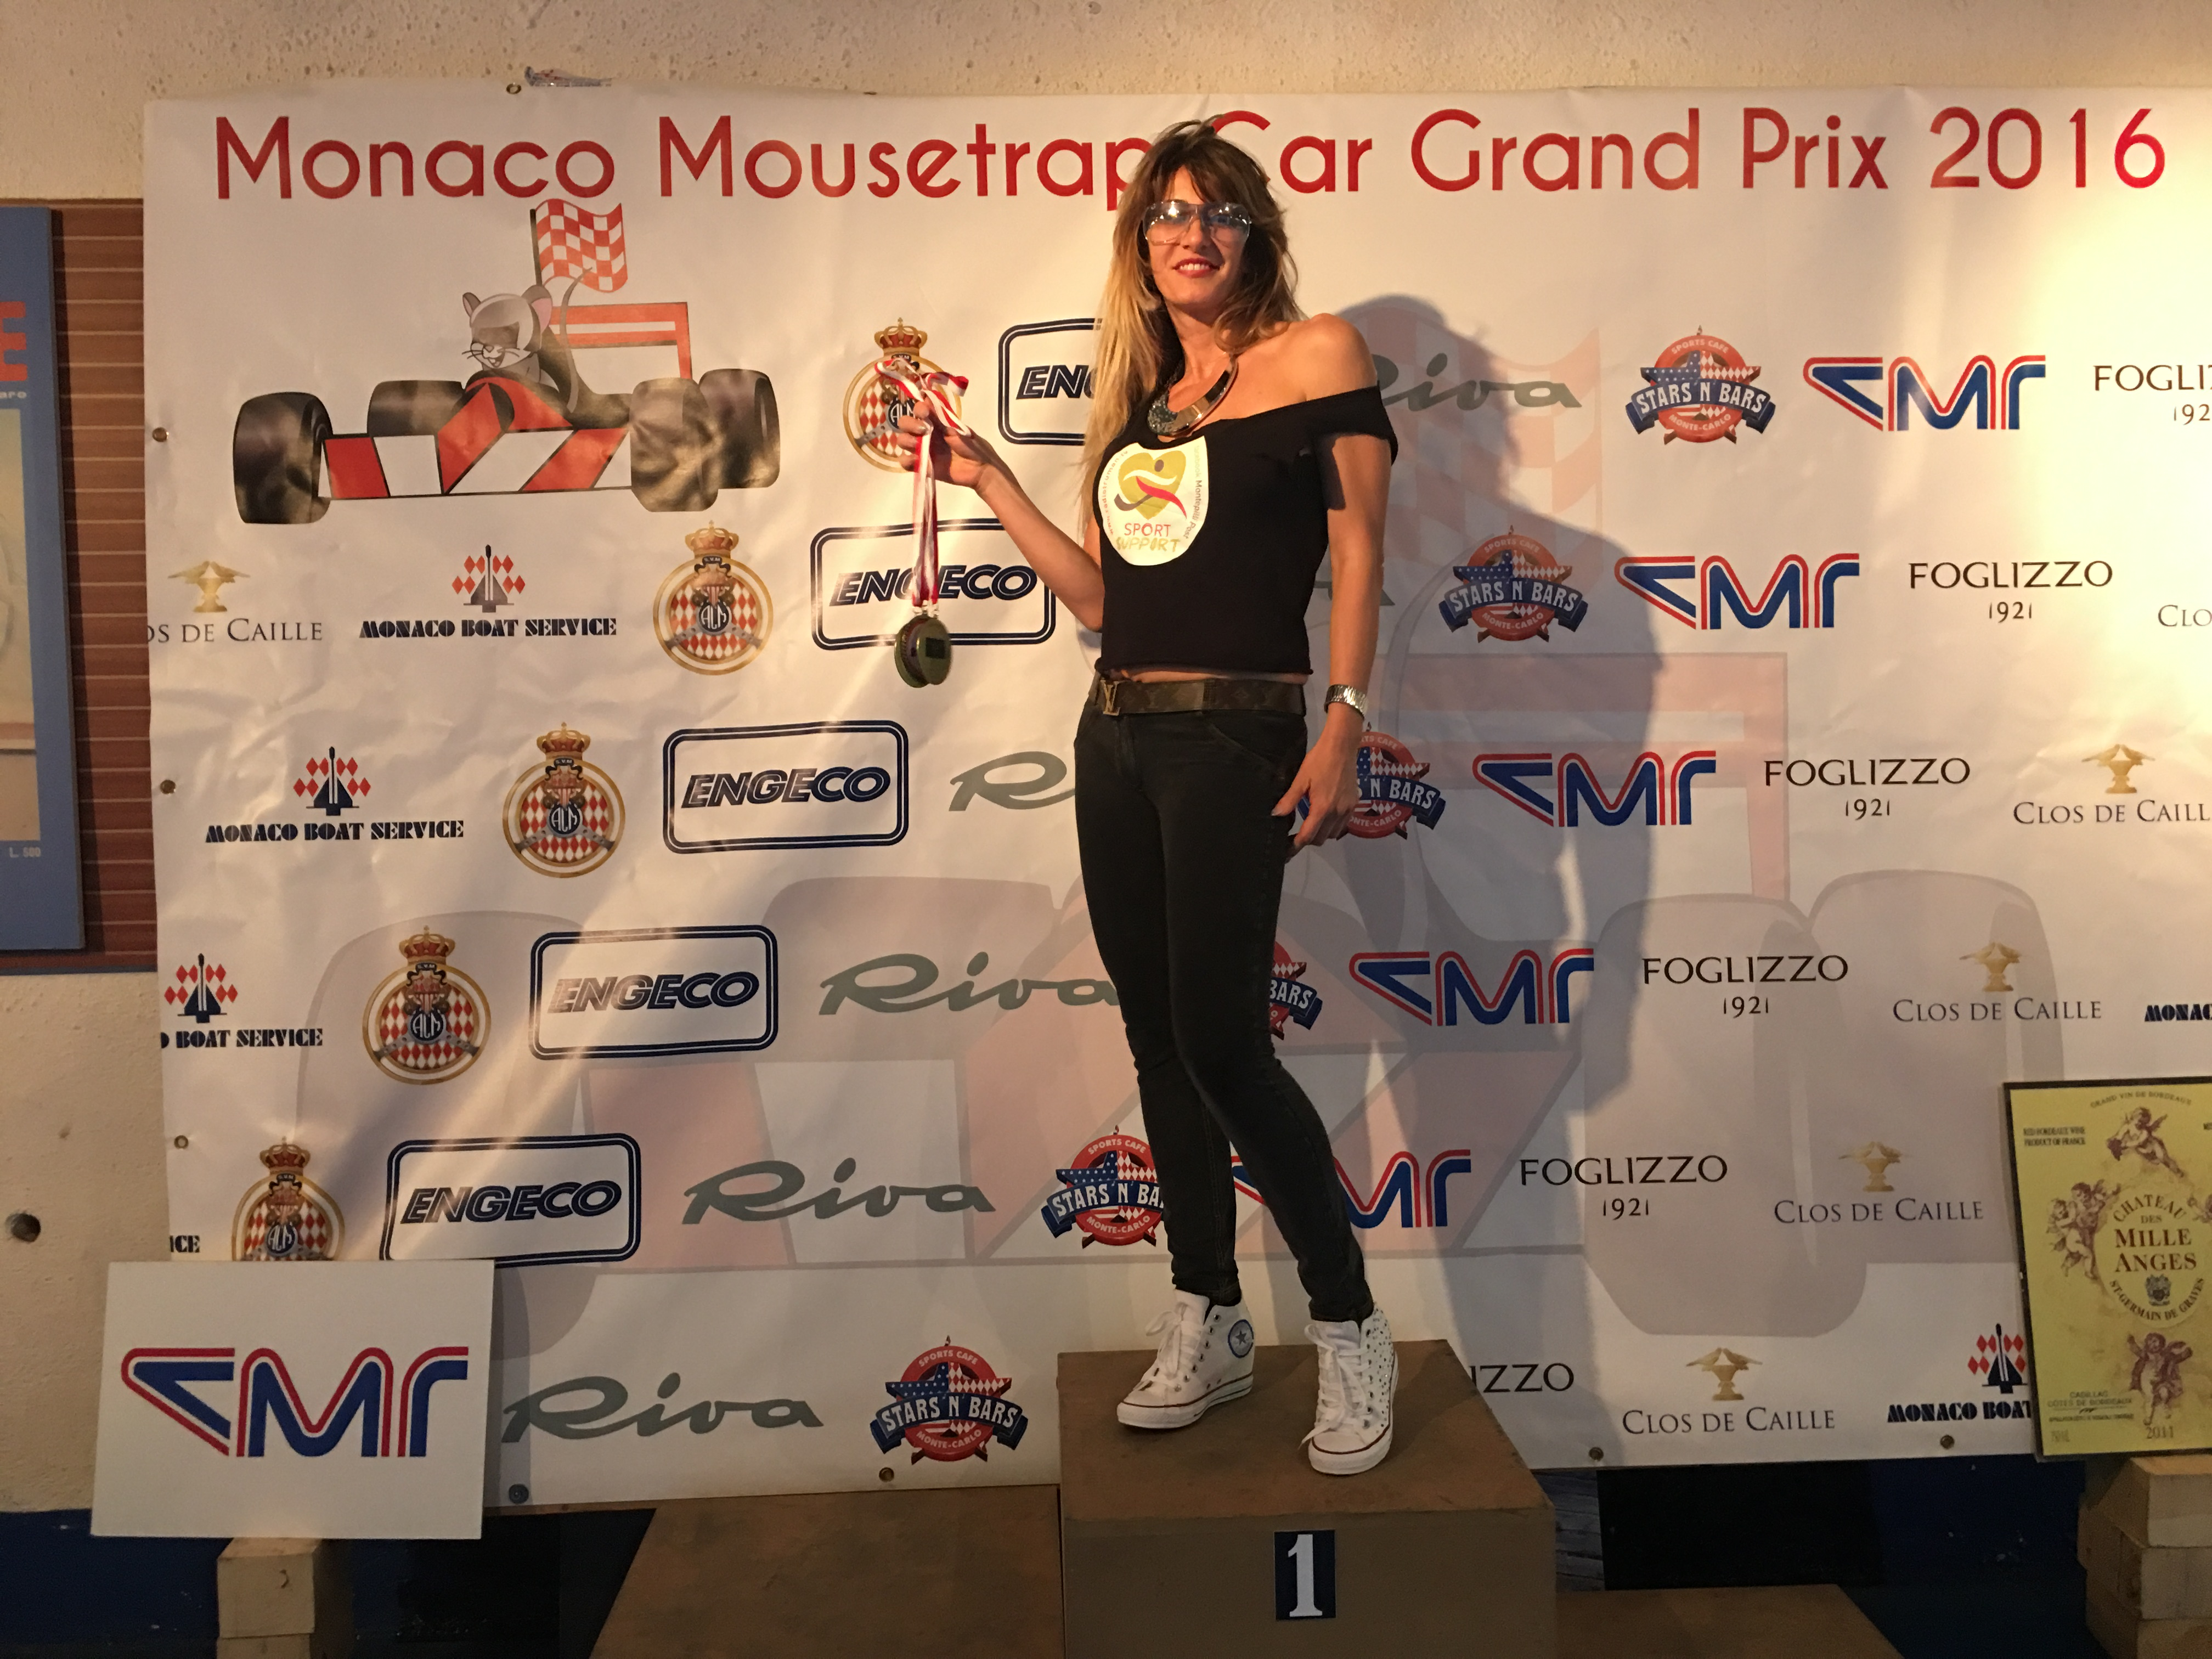 THE_MONACO_MOUSE_TRAP_CARS_GRAND_1